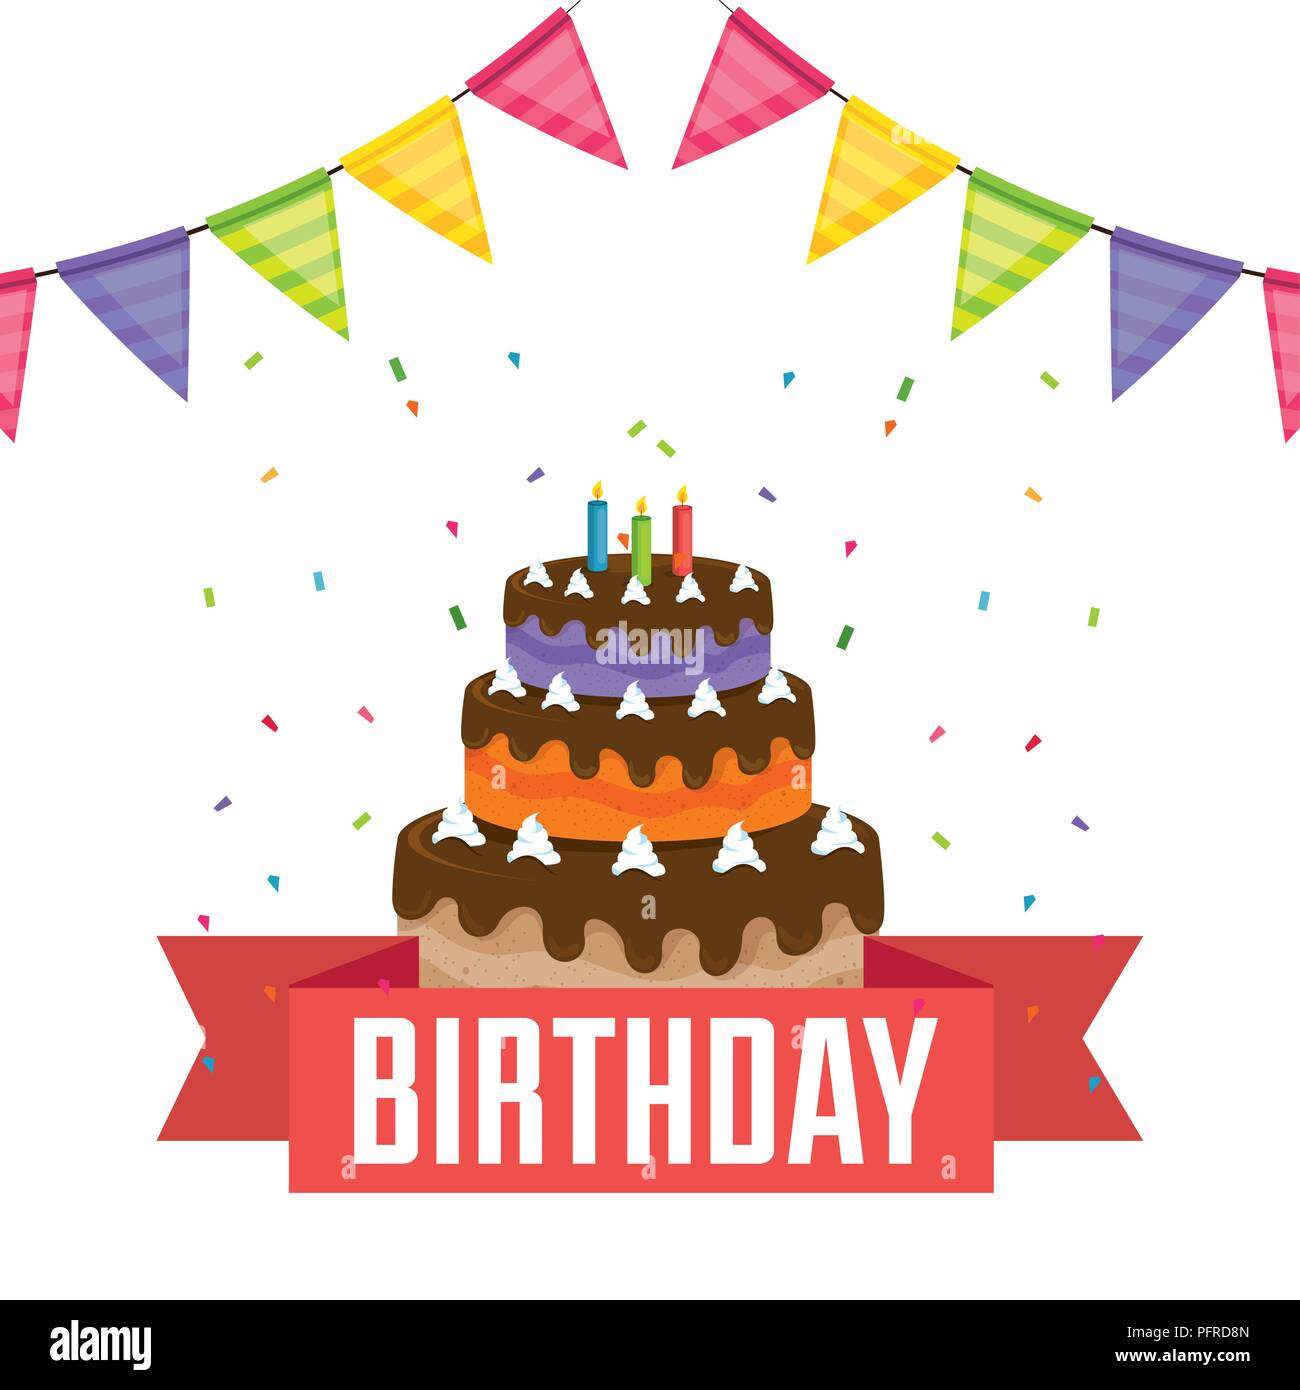 Happy Birthday Card With Cake And Garlands Stock Vector Art